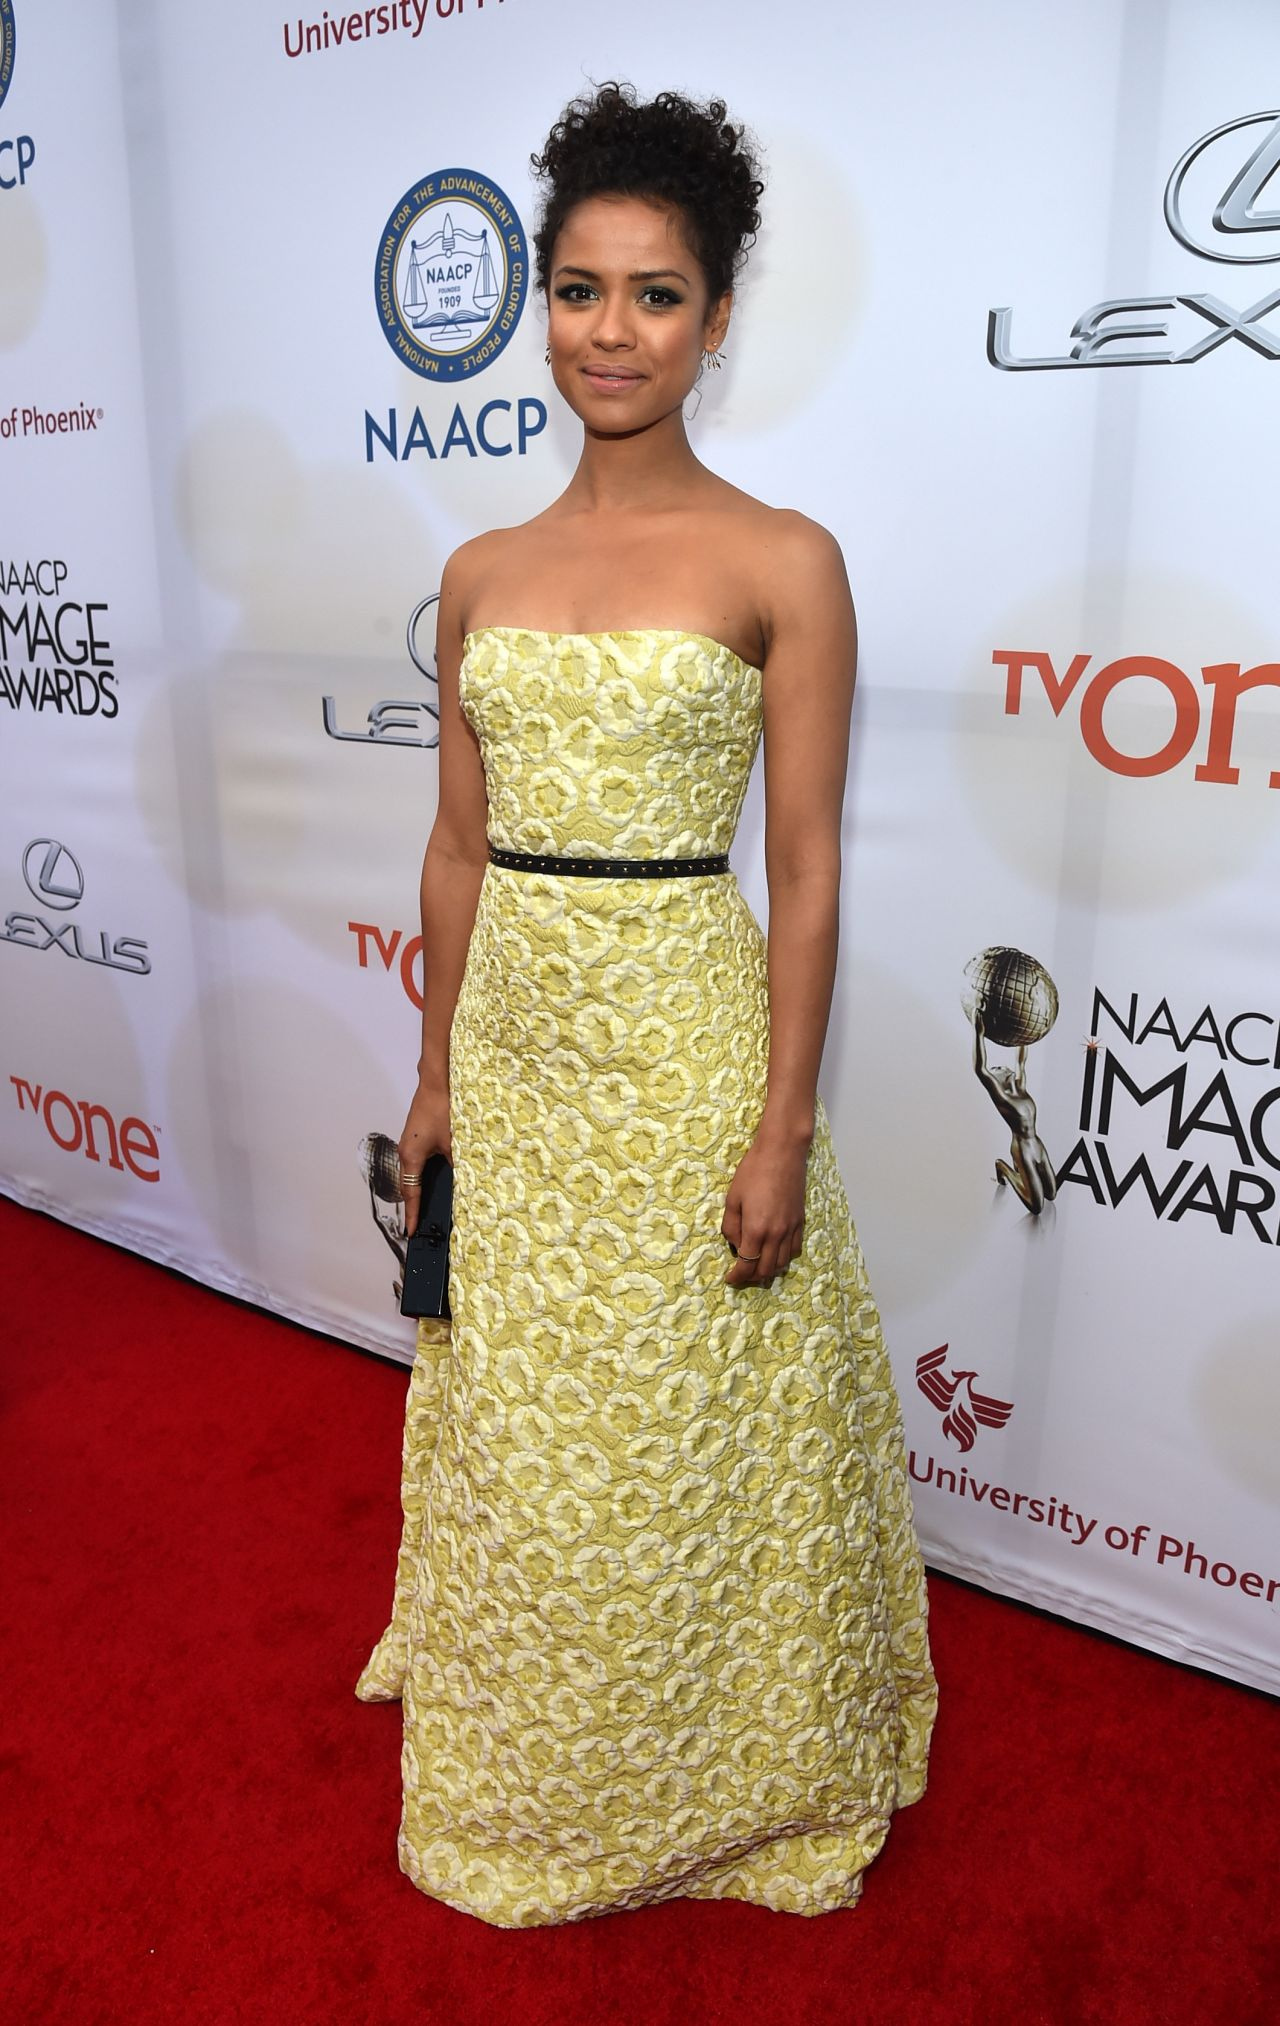 gugu-mbatha-raw-2015-naacp-image-awards-in-pasadena_1